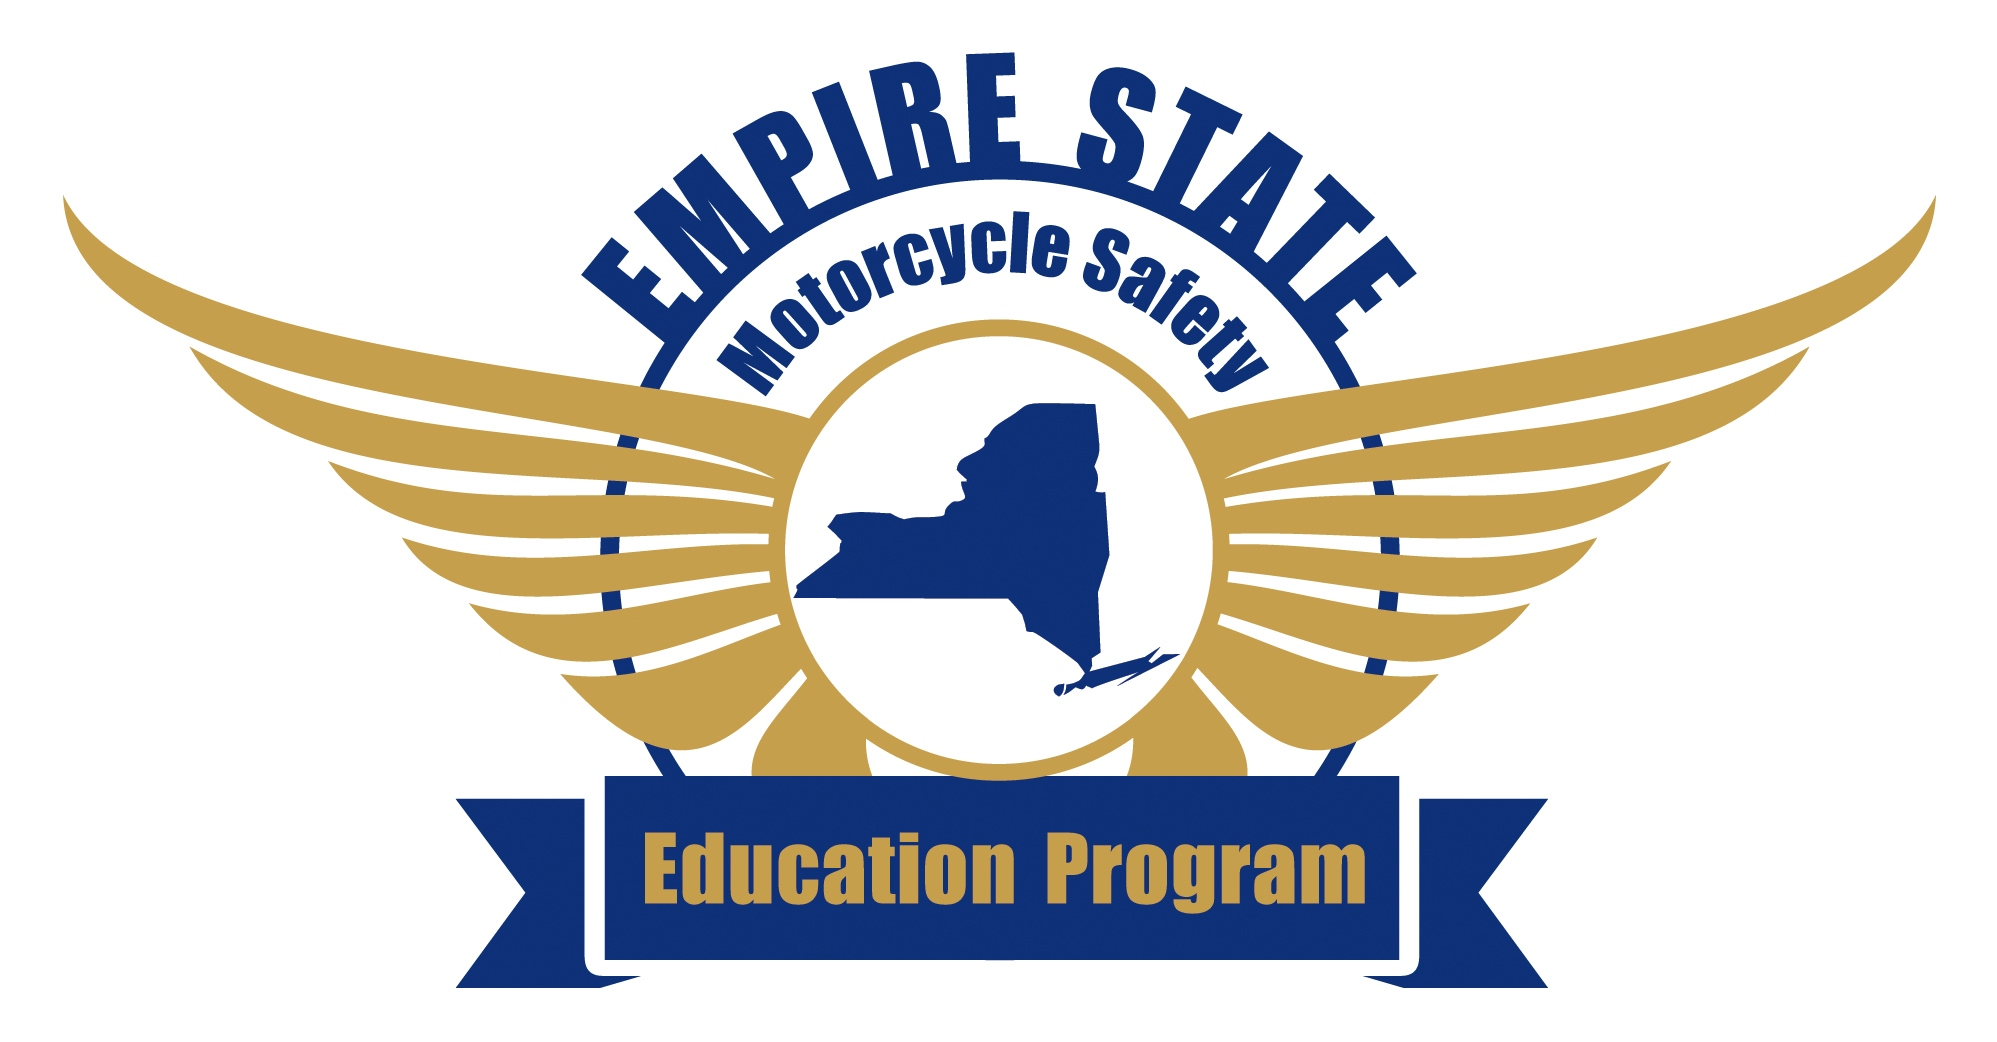 Empire-State-Motorcycle-LOGO-c-Gold.jpg